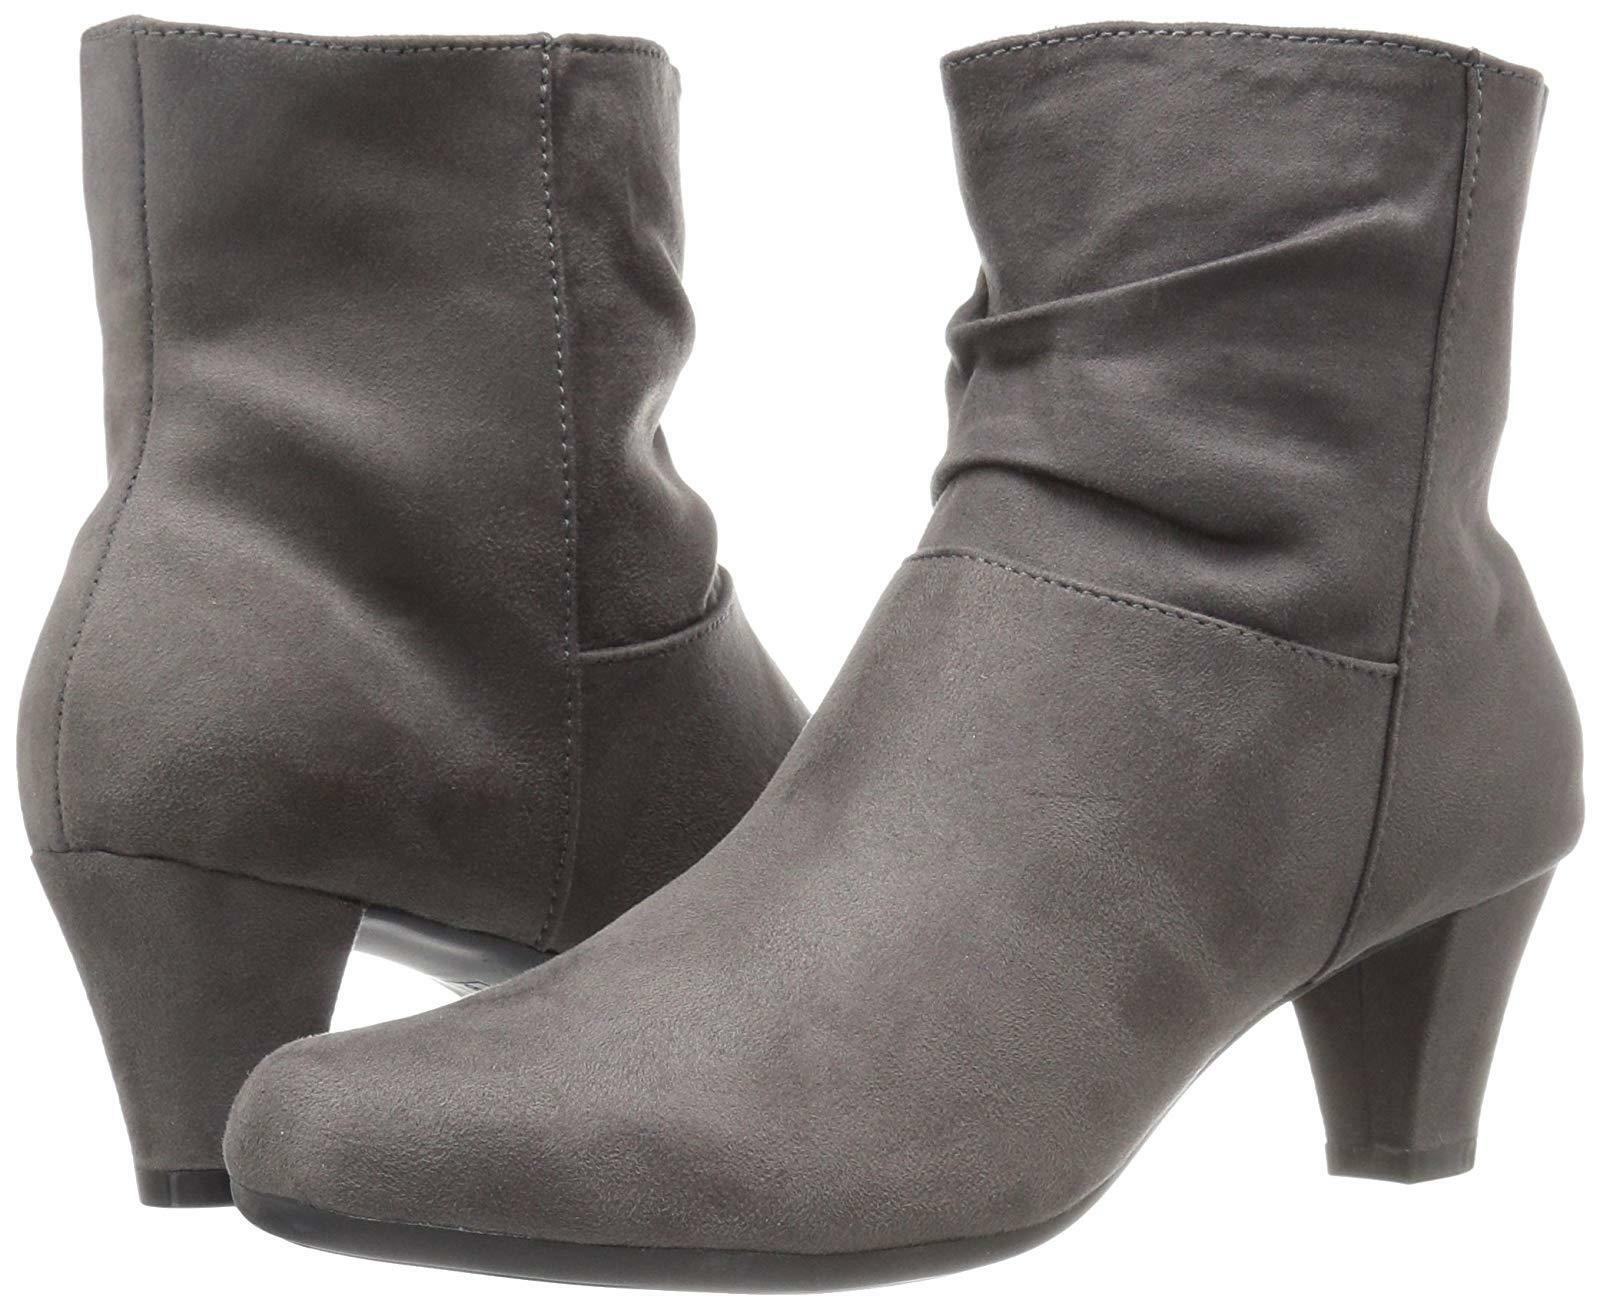 9.5M Aerosoles Womens Shore Fit Grey Closed Toe Ankle Fashion Boots